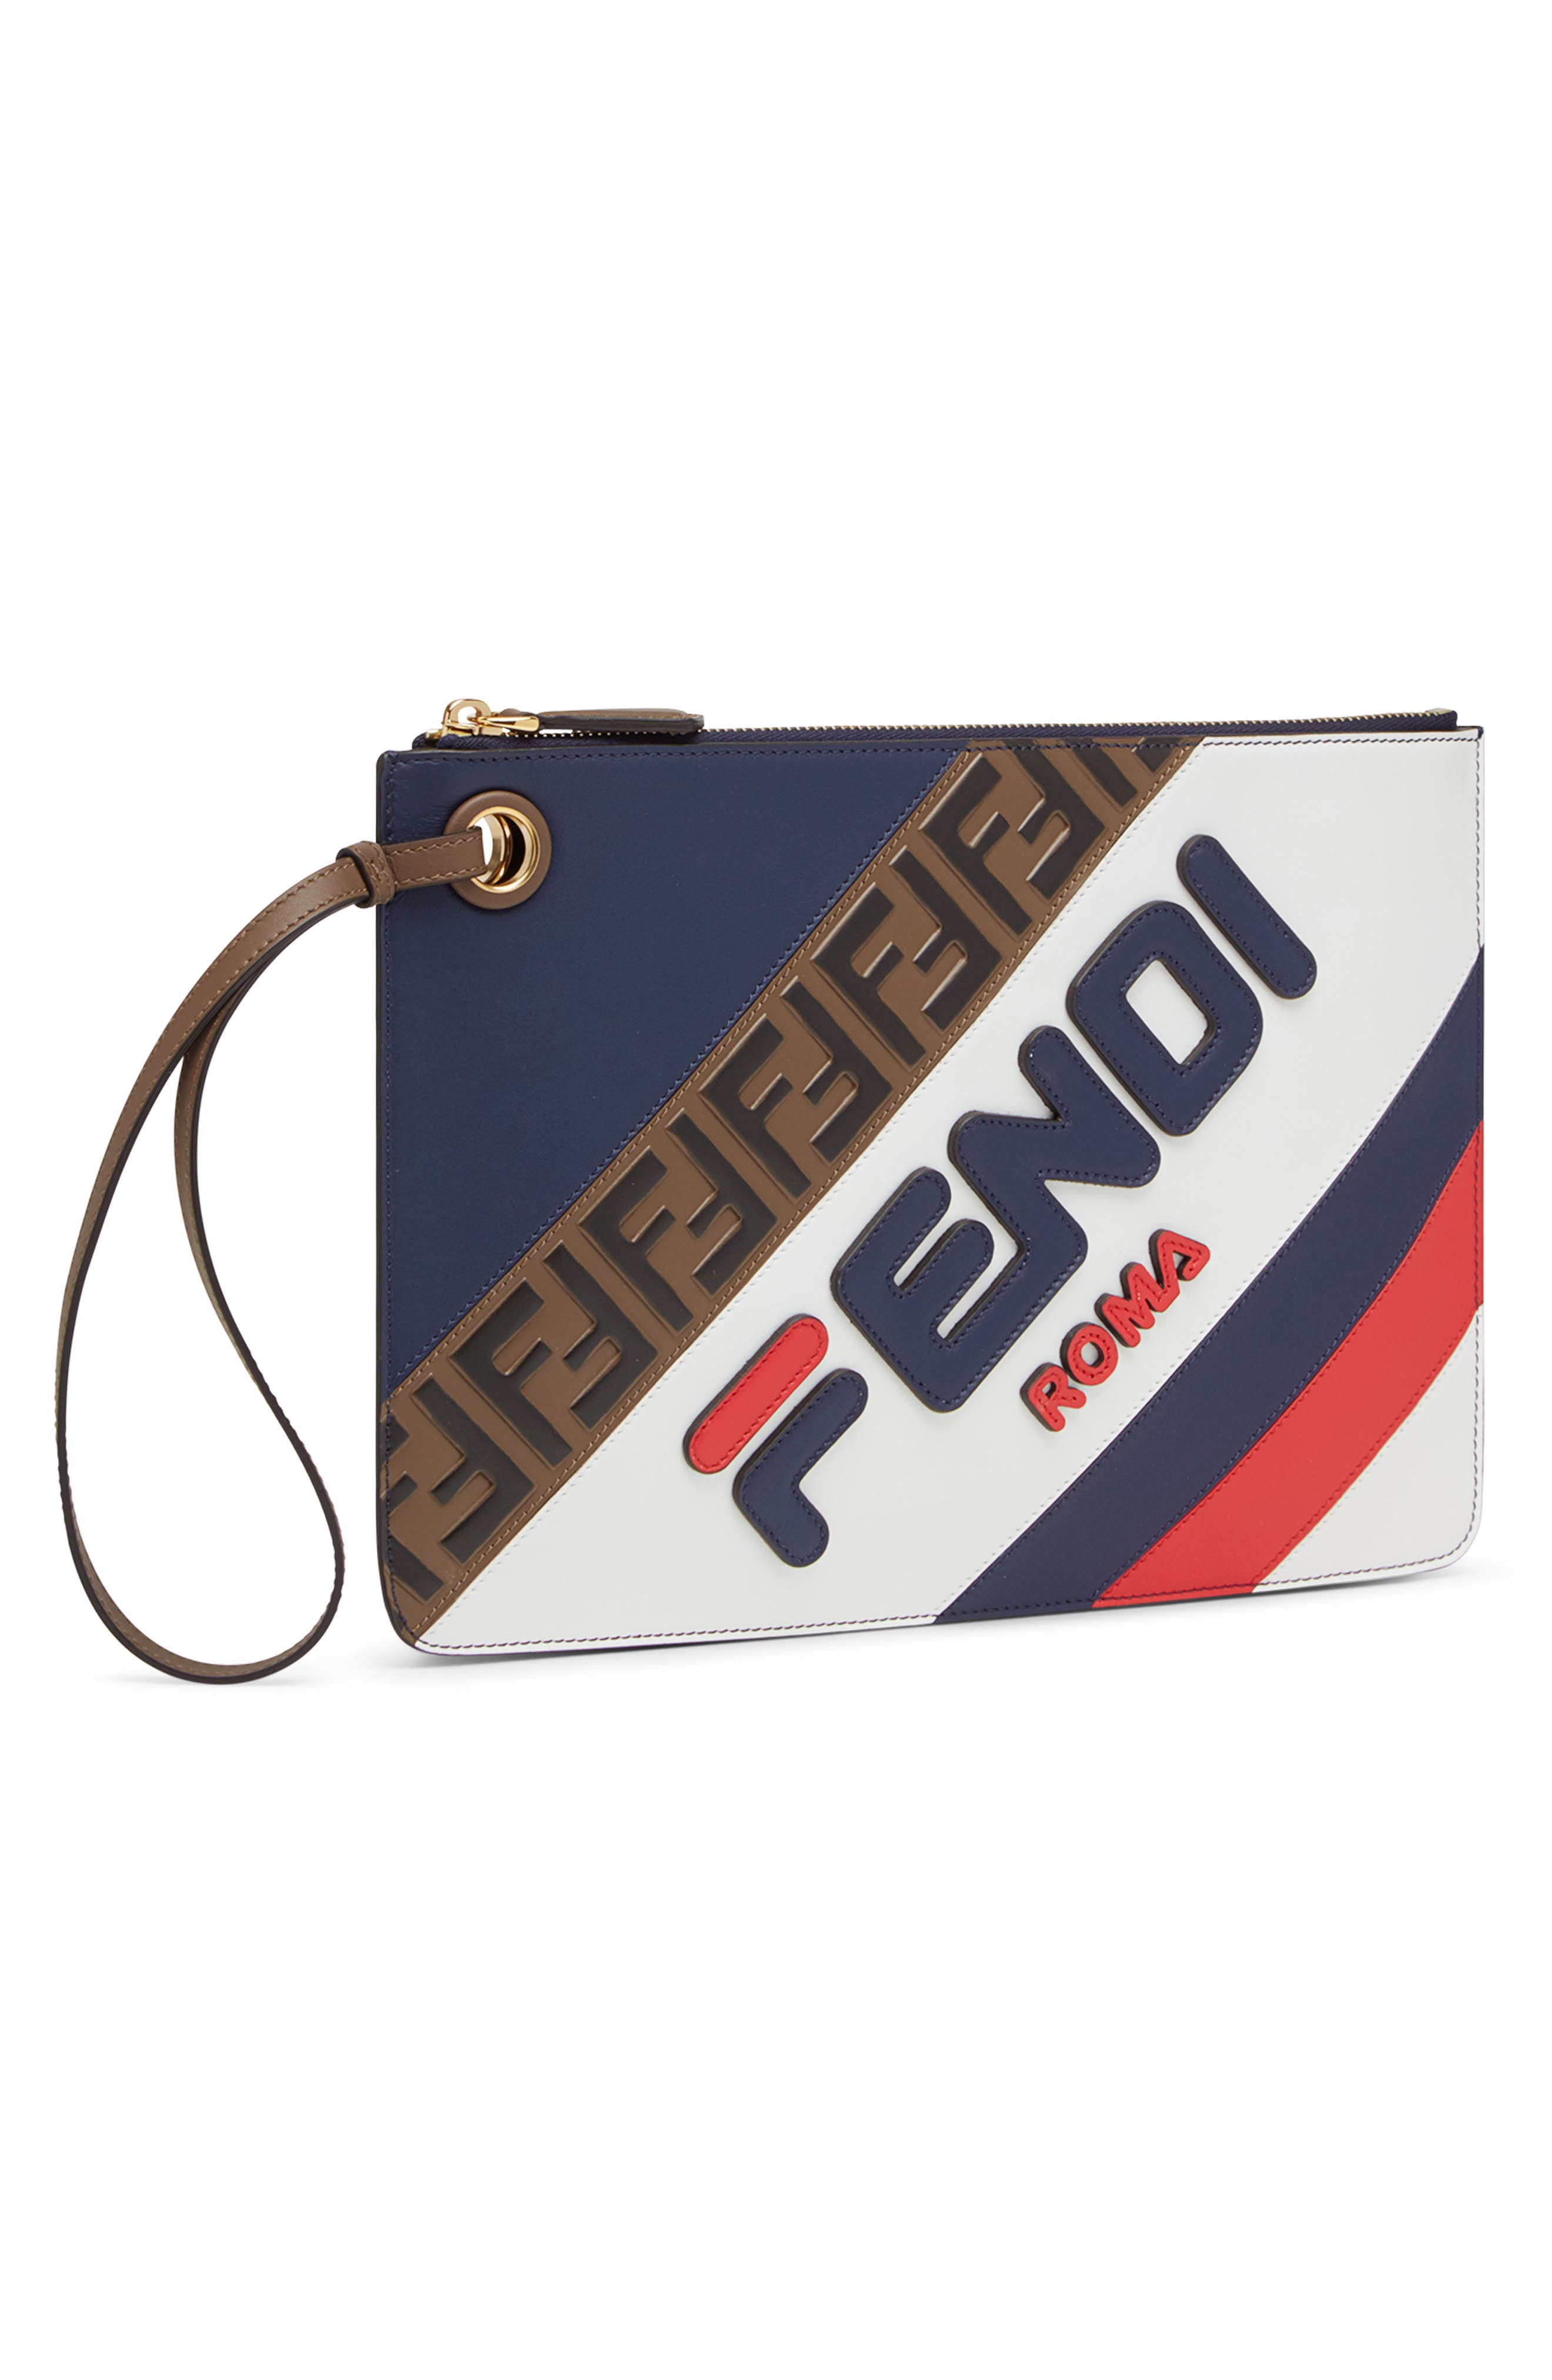 x FILA Medium Mania Logo Leather Clutch,                             Alternate thumbnail 4, color,                             BLUE/ BERRY MULTI